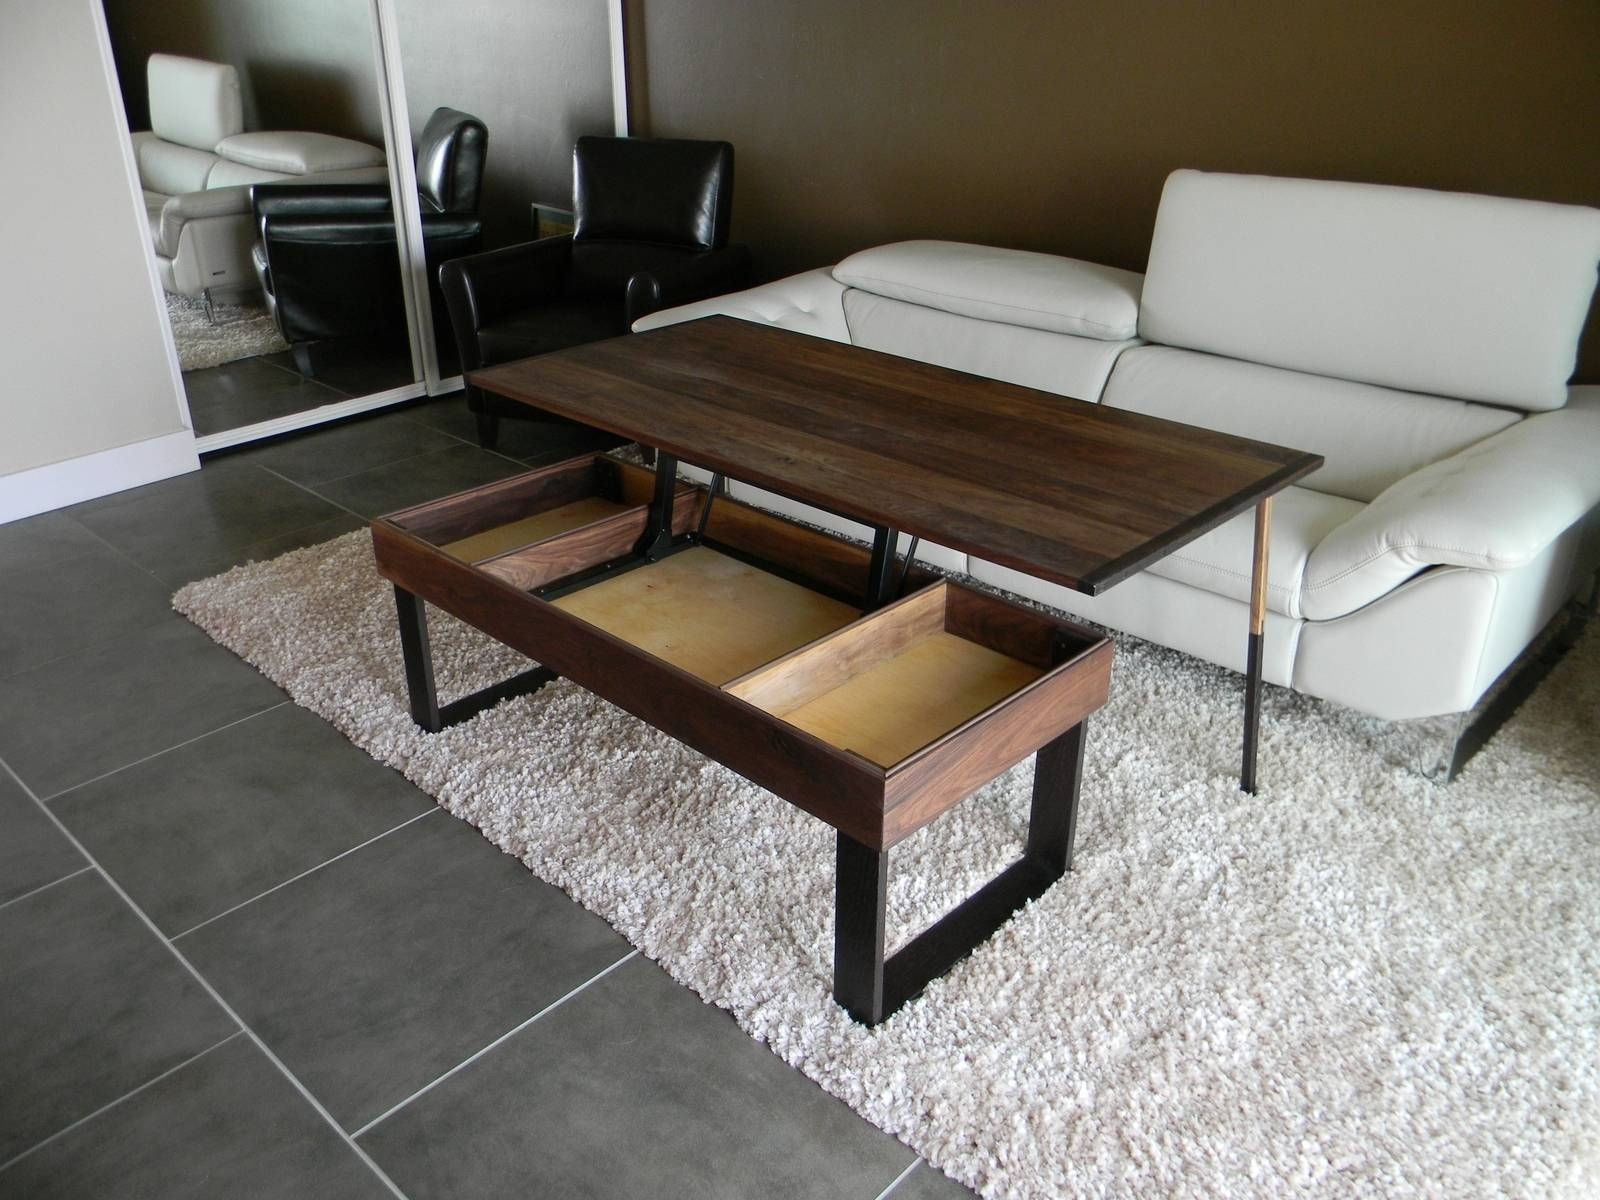 Lift Top Coffee Table Plans Awesome On Ottoman Coffee Table And intended for Elevating Coffee Tables (Image 20 of 30)